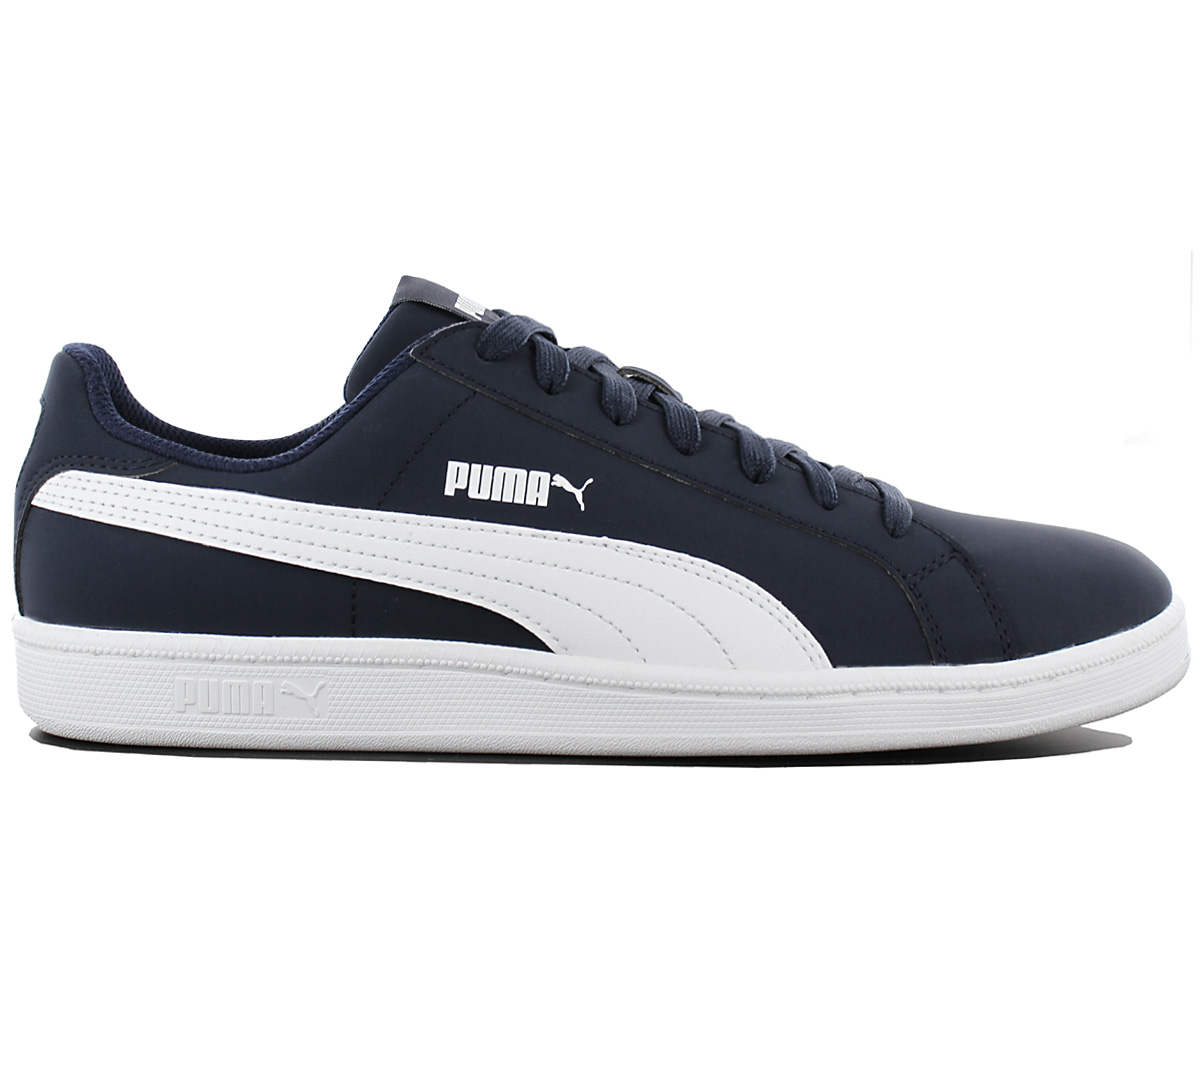 fdd432ef2866 Puma Smash Buck Men s Sneakers Shoes Leisure Blue Trainers 356753-01 ...